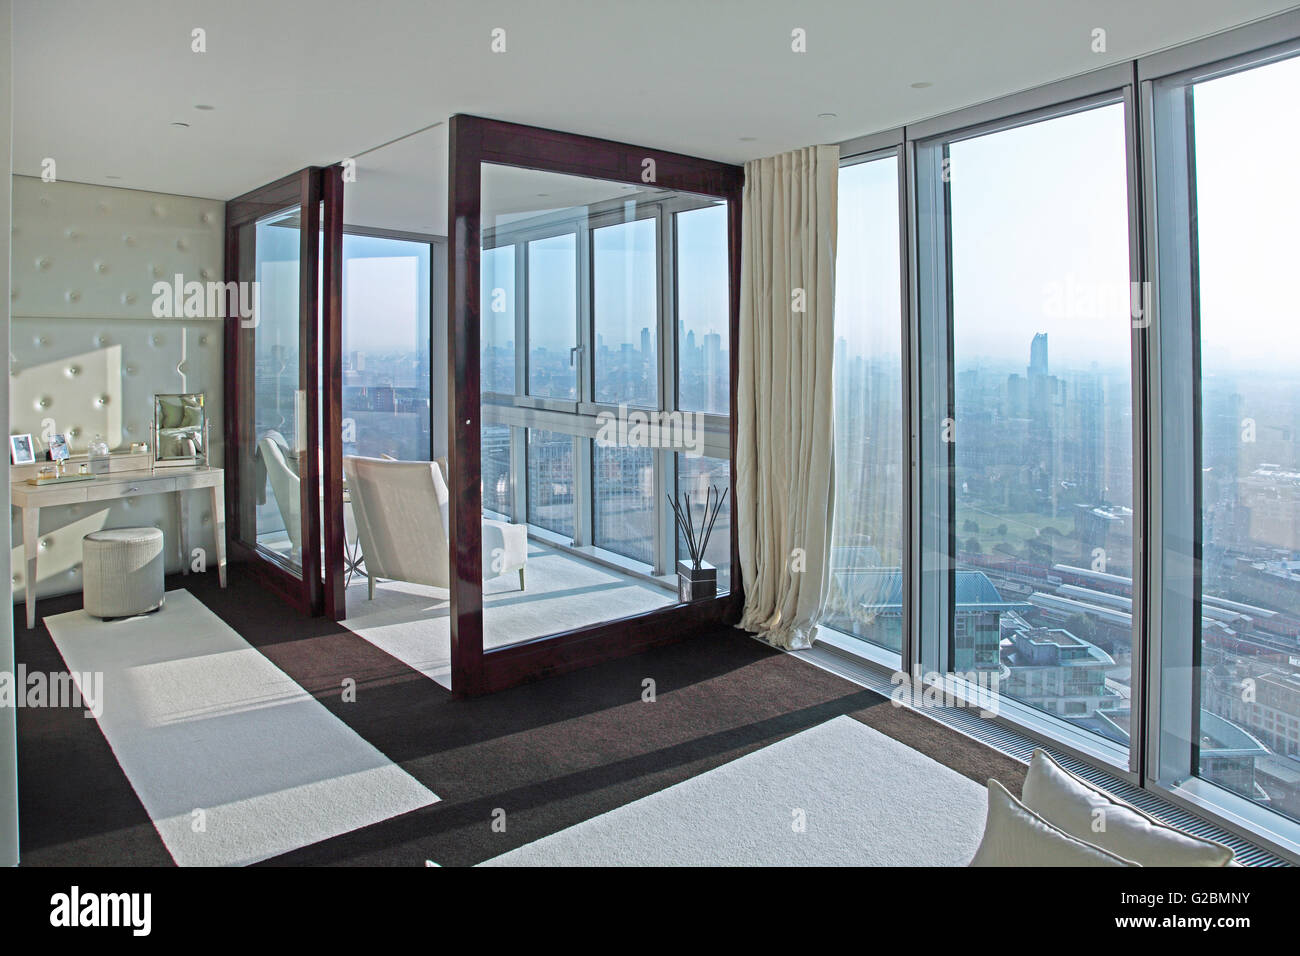 Interior of a flat on the35th floor of The Tower, a luxury residential development at Vauxhall, London, UK. - Stock Image